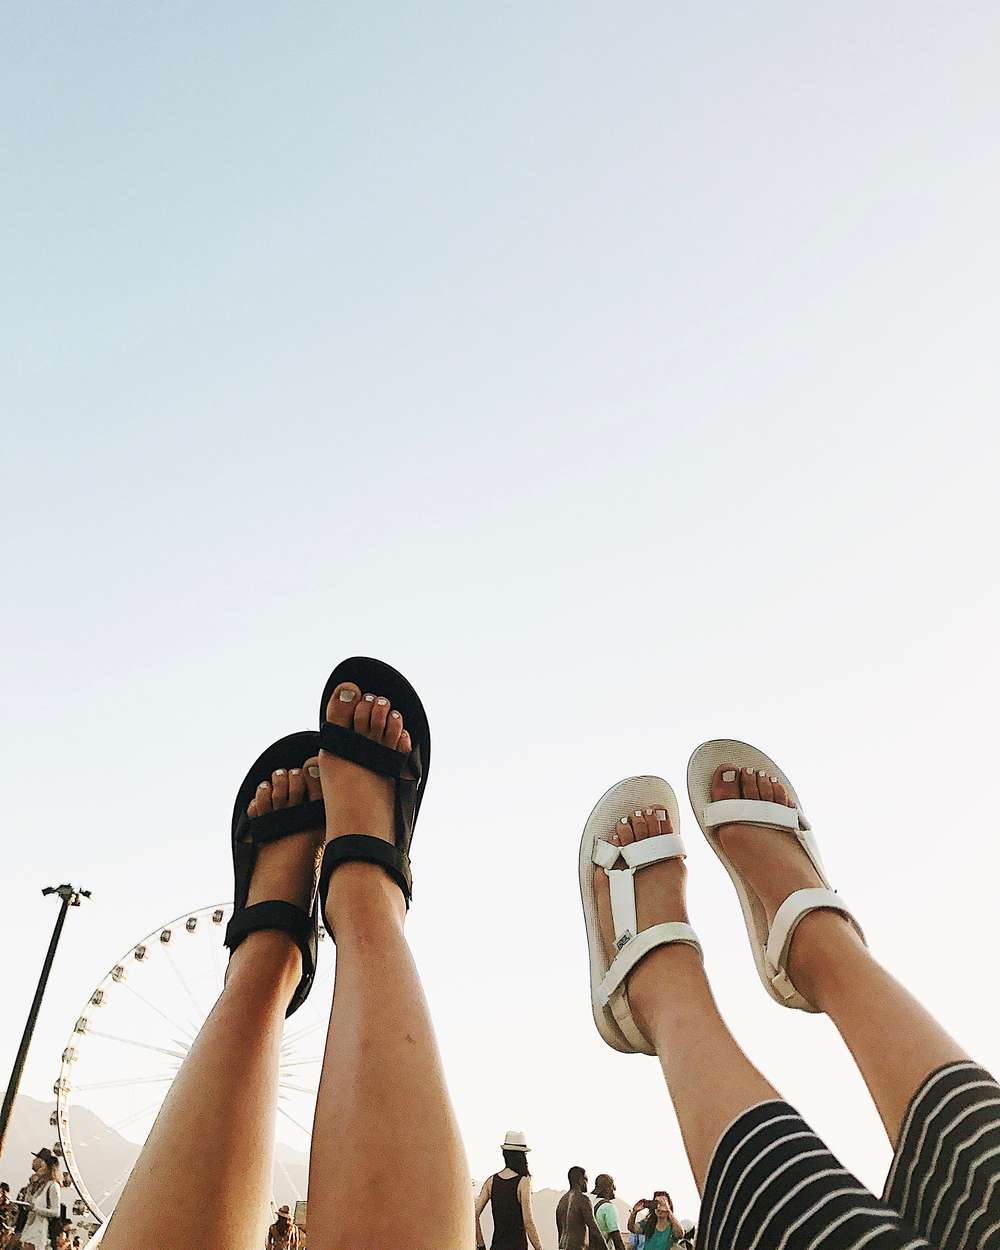 Feet in air wearing Teva sandals